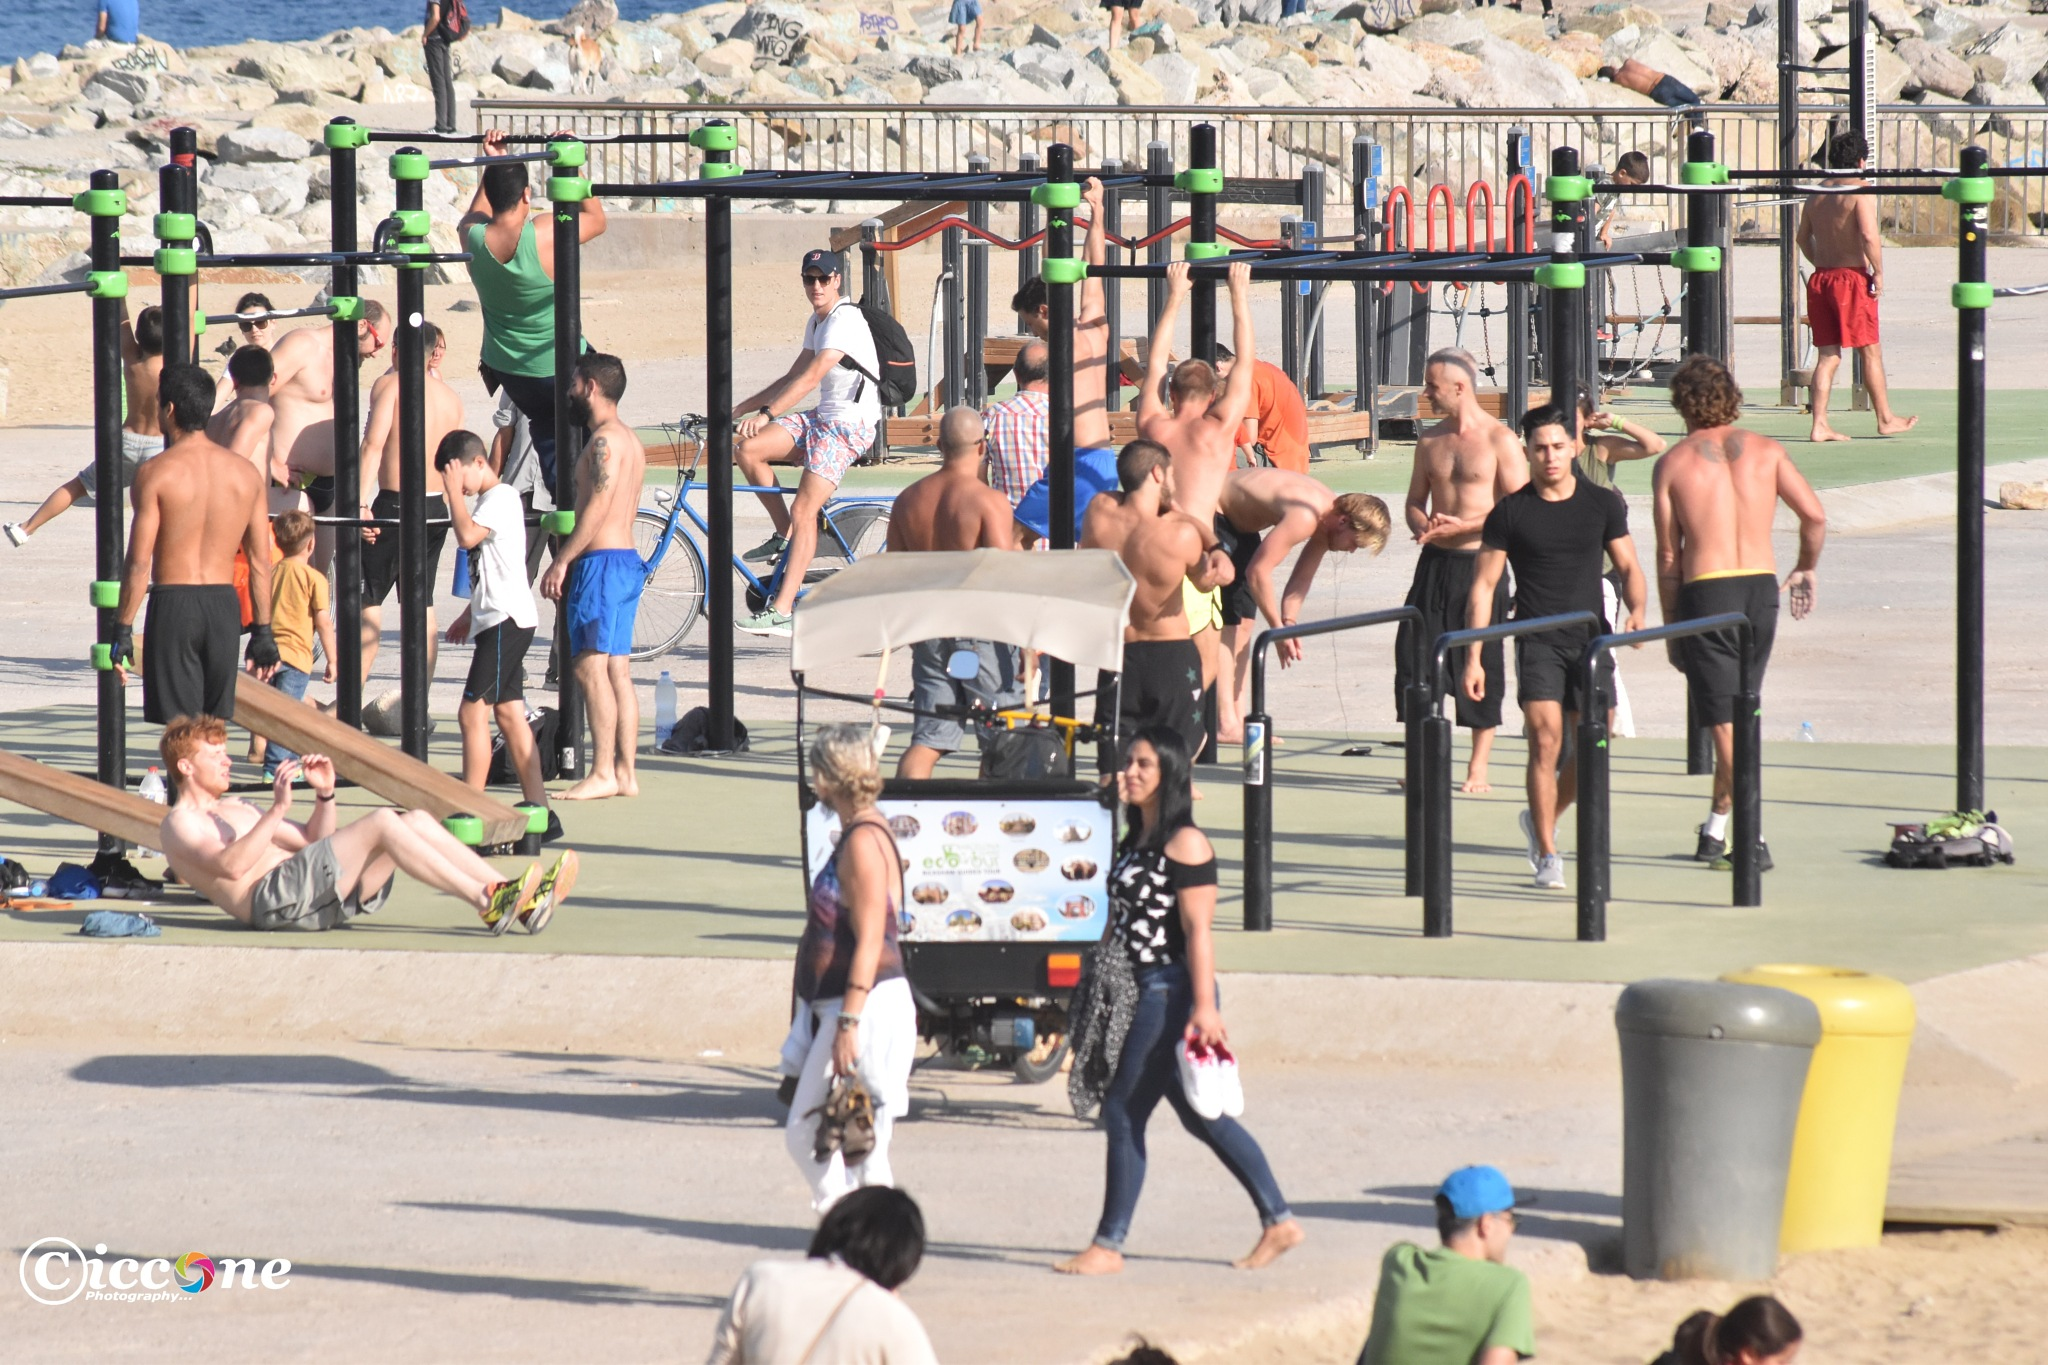 Muscle Beach by Marc Ciccone